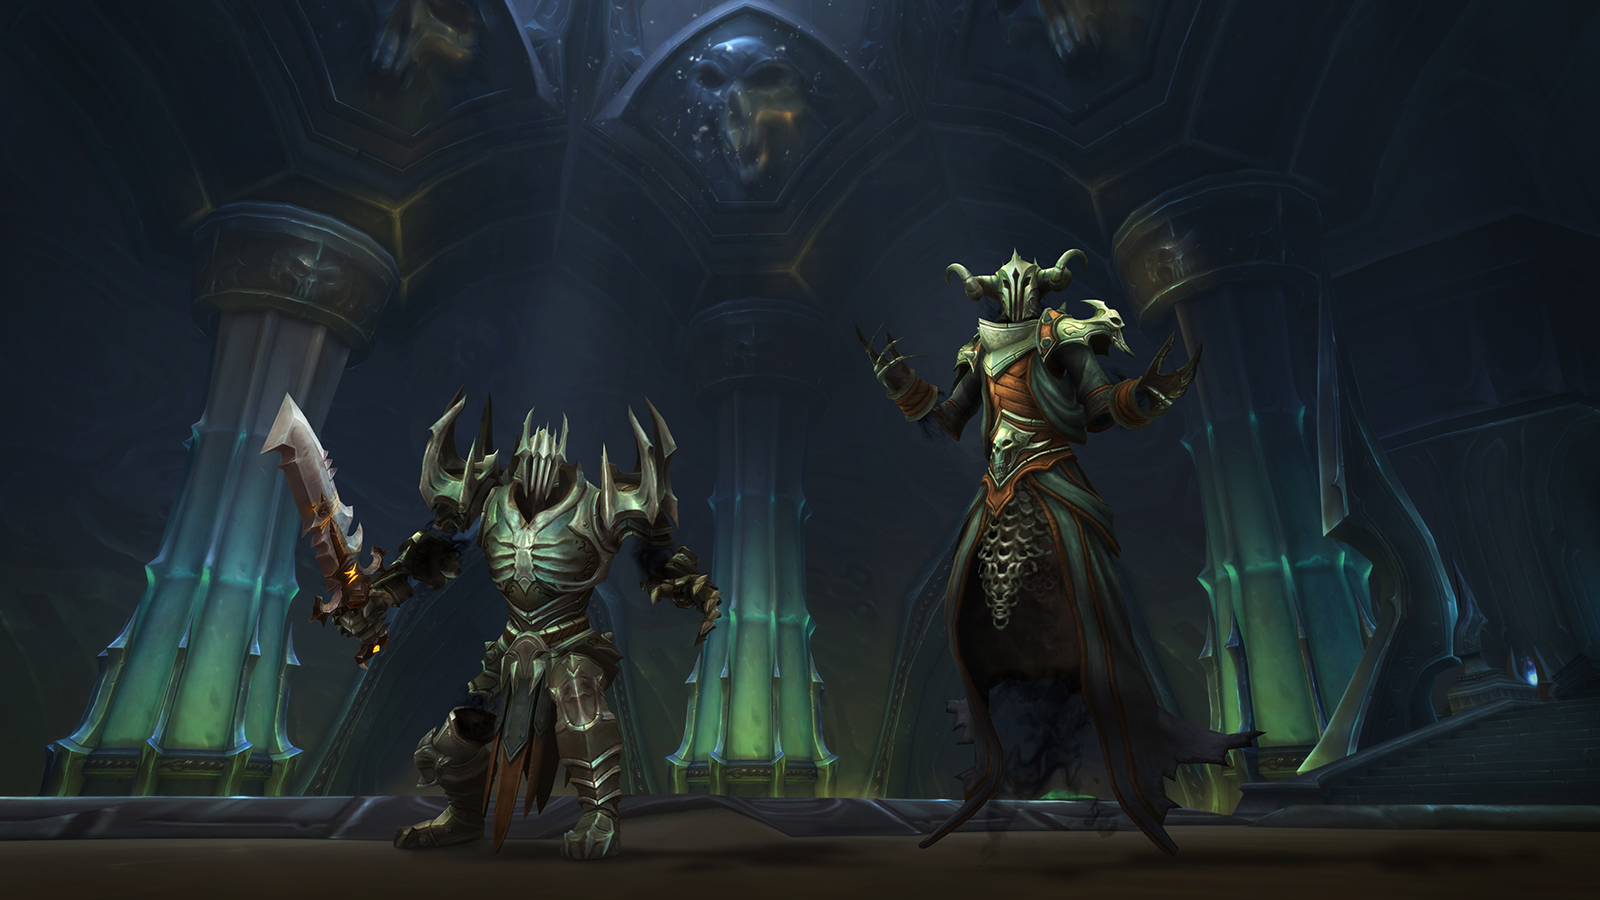 A picture of Torghast, Tower of the Damned in Shadowlands, featuring two characters